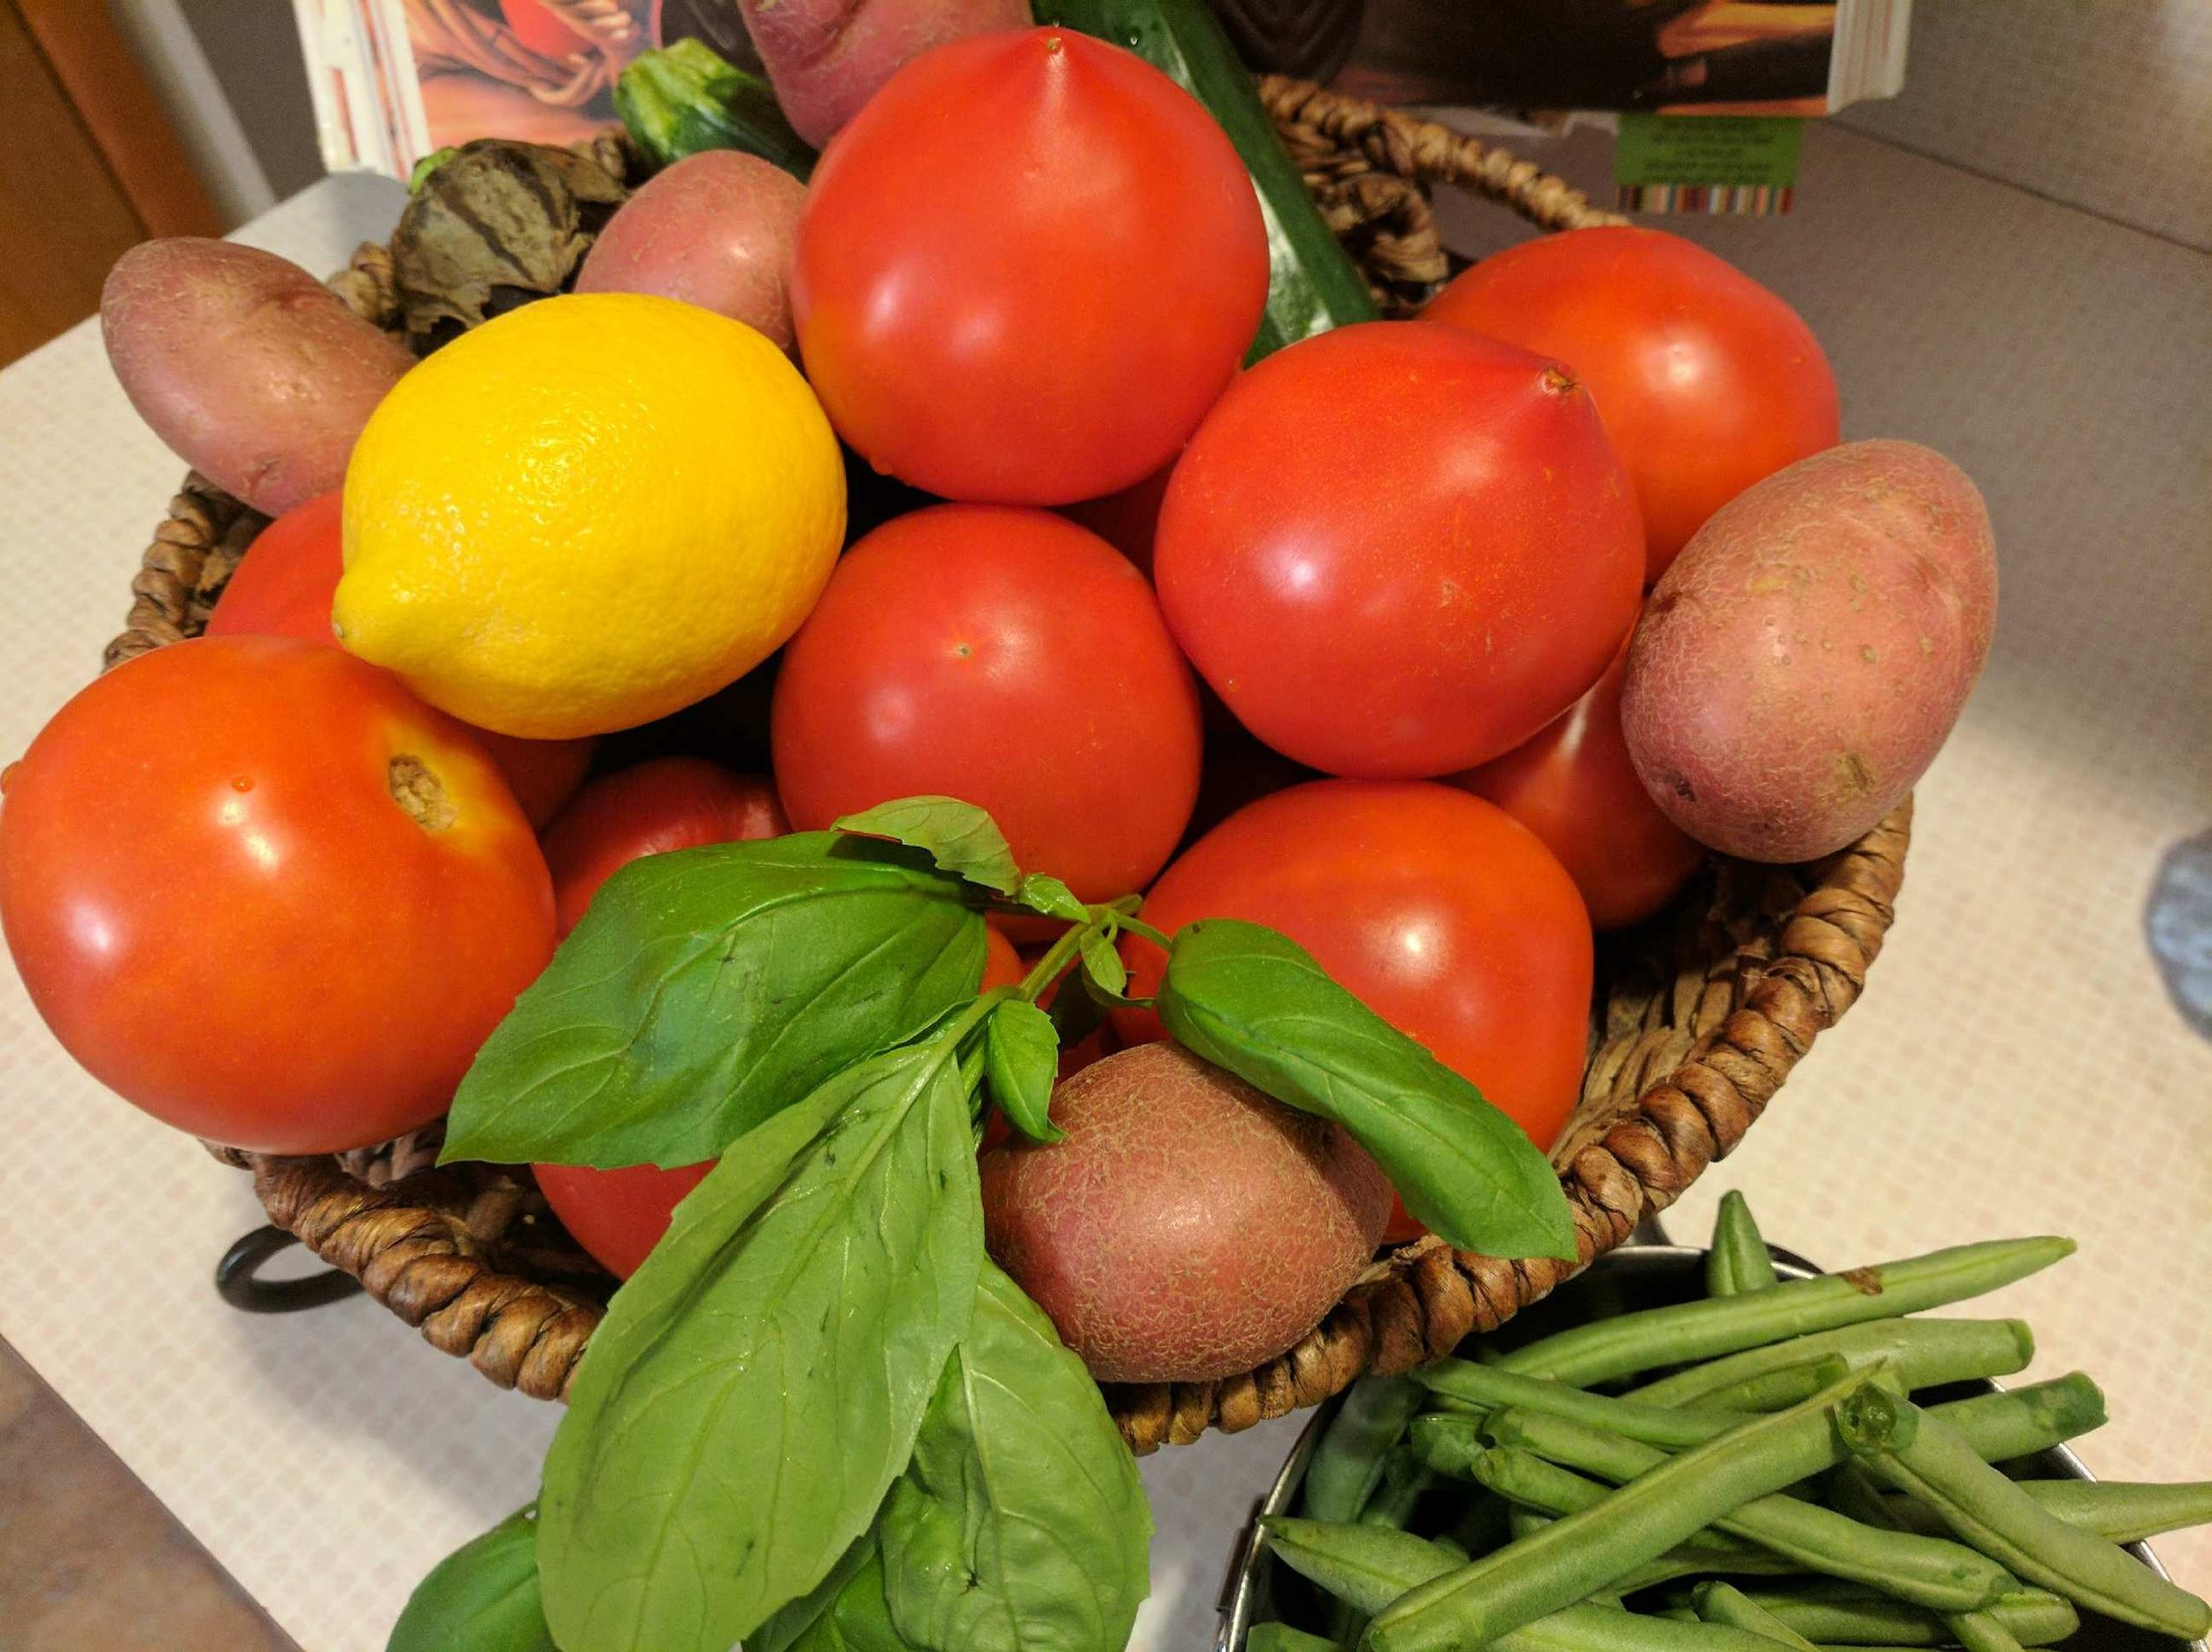 Fresh produce abound during summer in my home state of New Jersey!